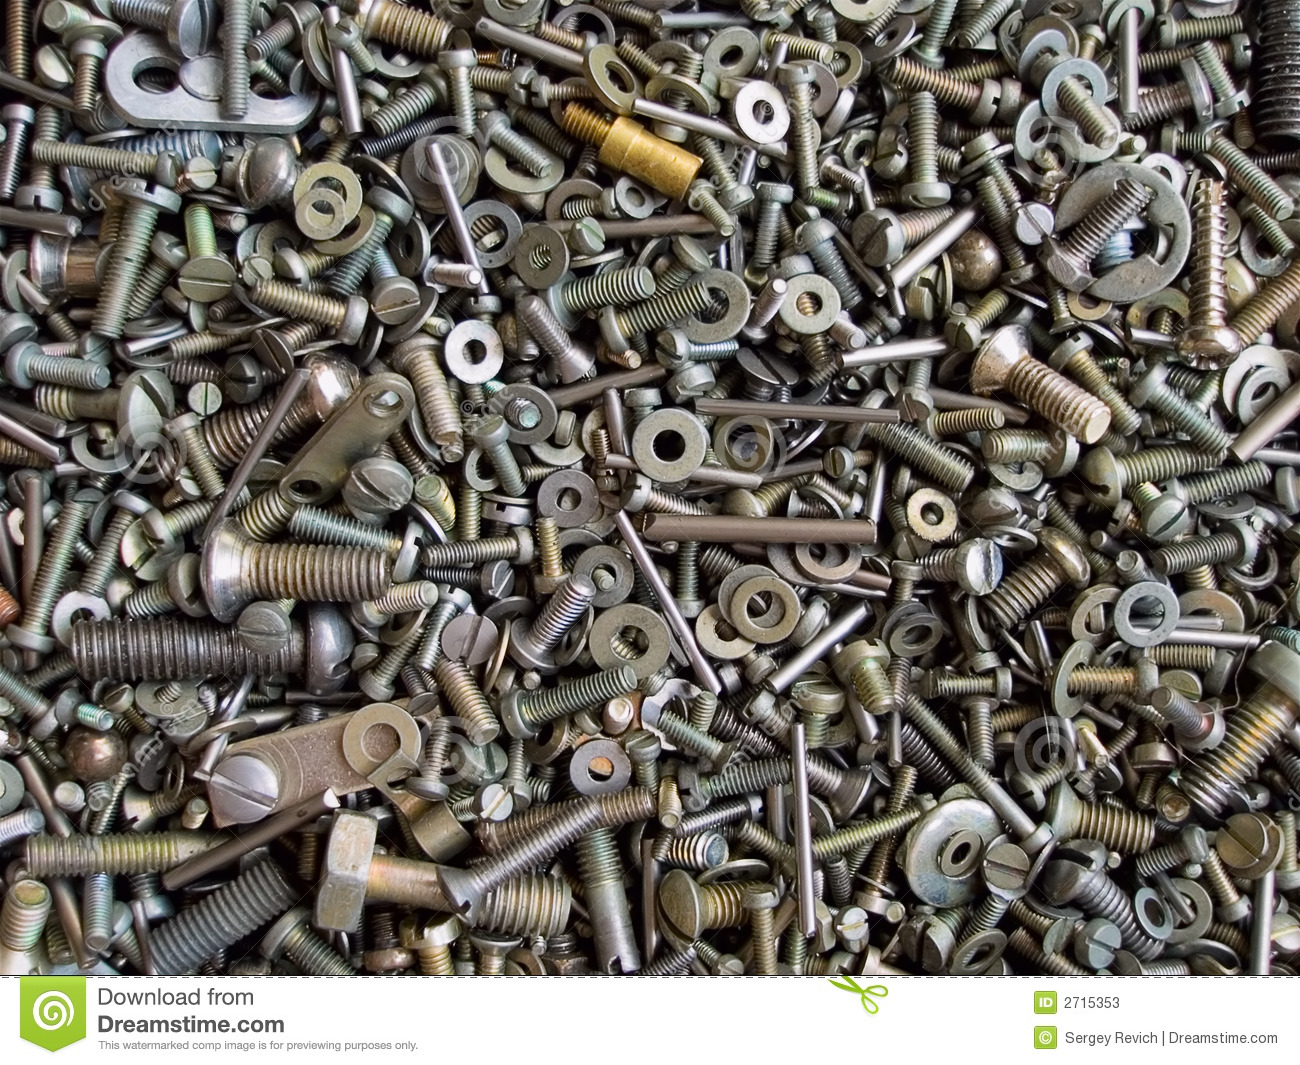 Amazing Screws Pictures & Backgrounds